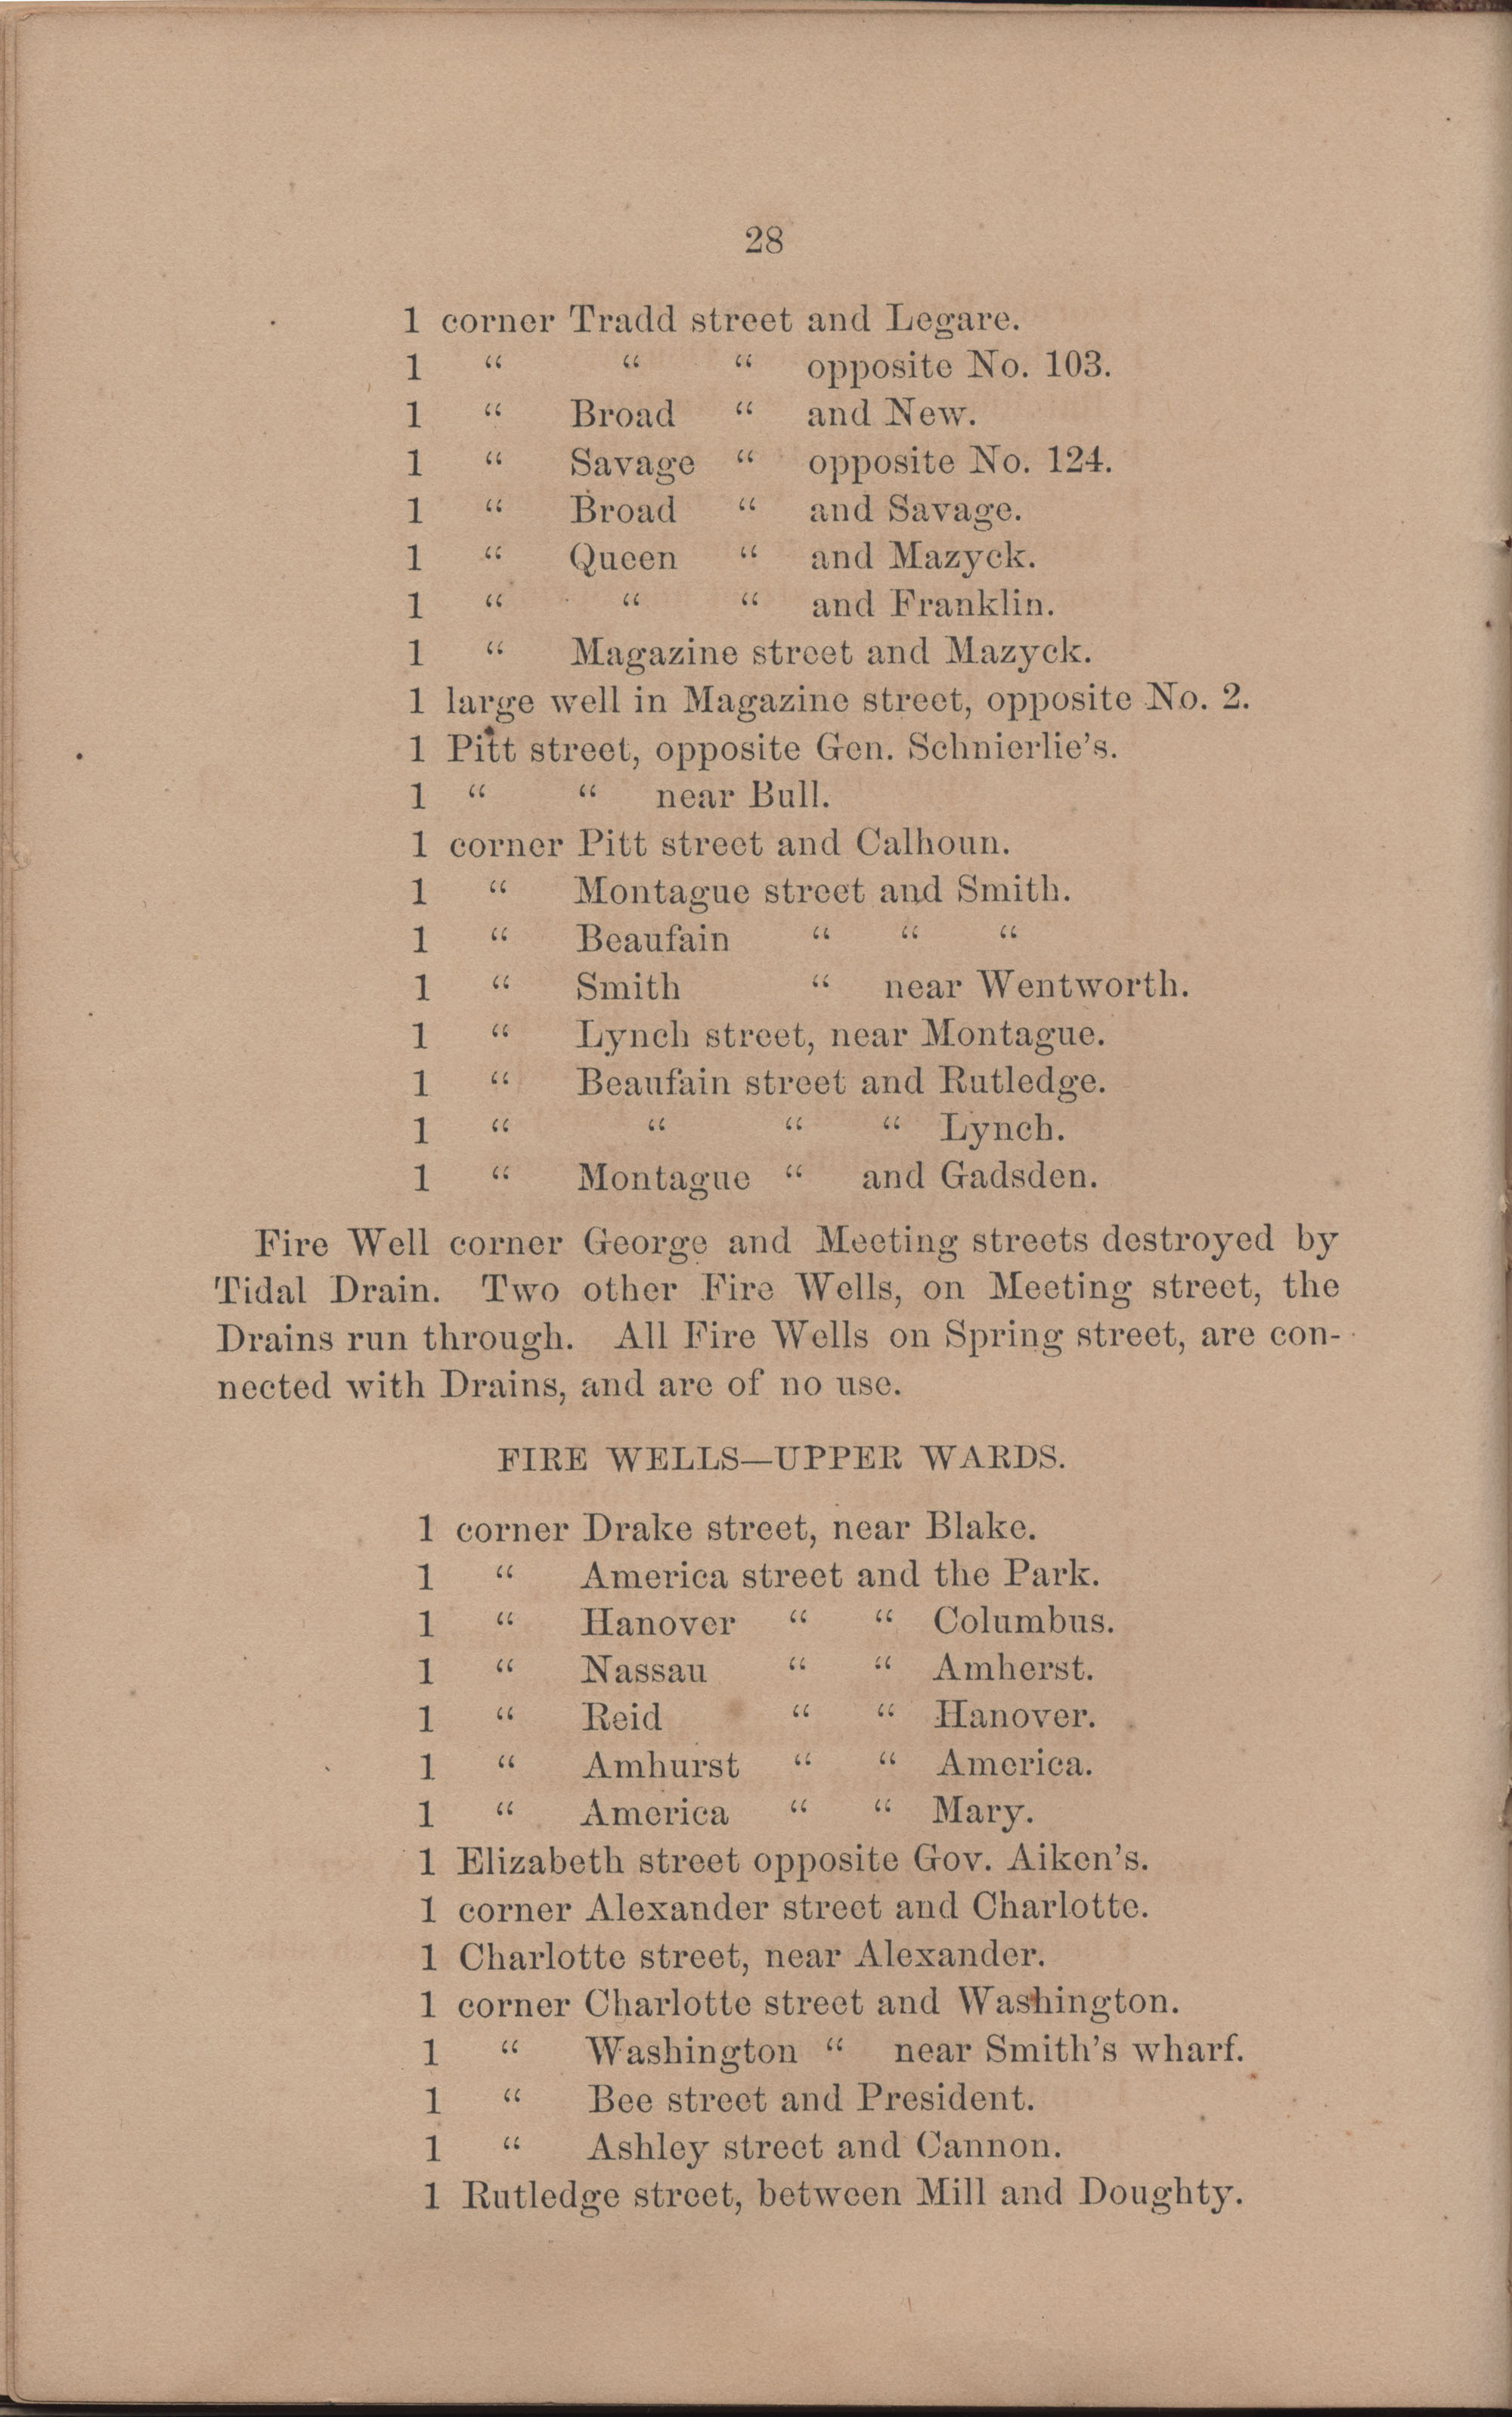 Annual Report of the Chief of the Fire Department of the City of Charleston, page 124